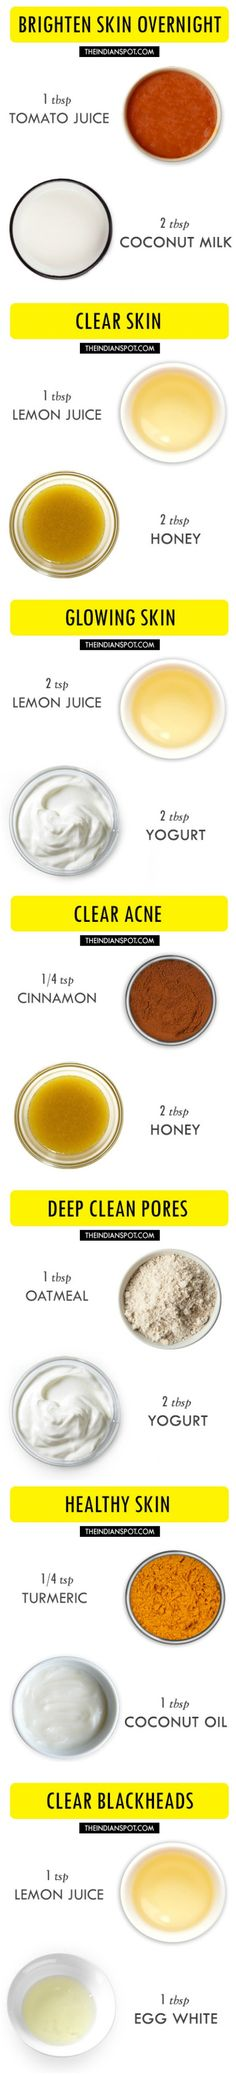 2 ingredient amazing face mask recipes